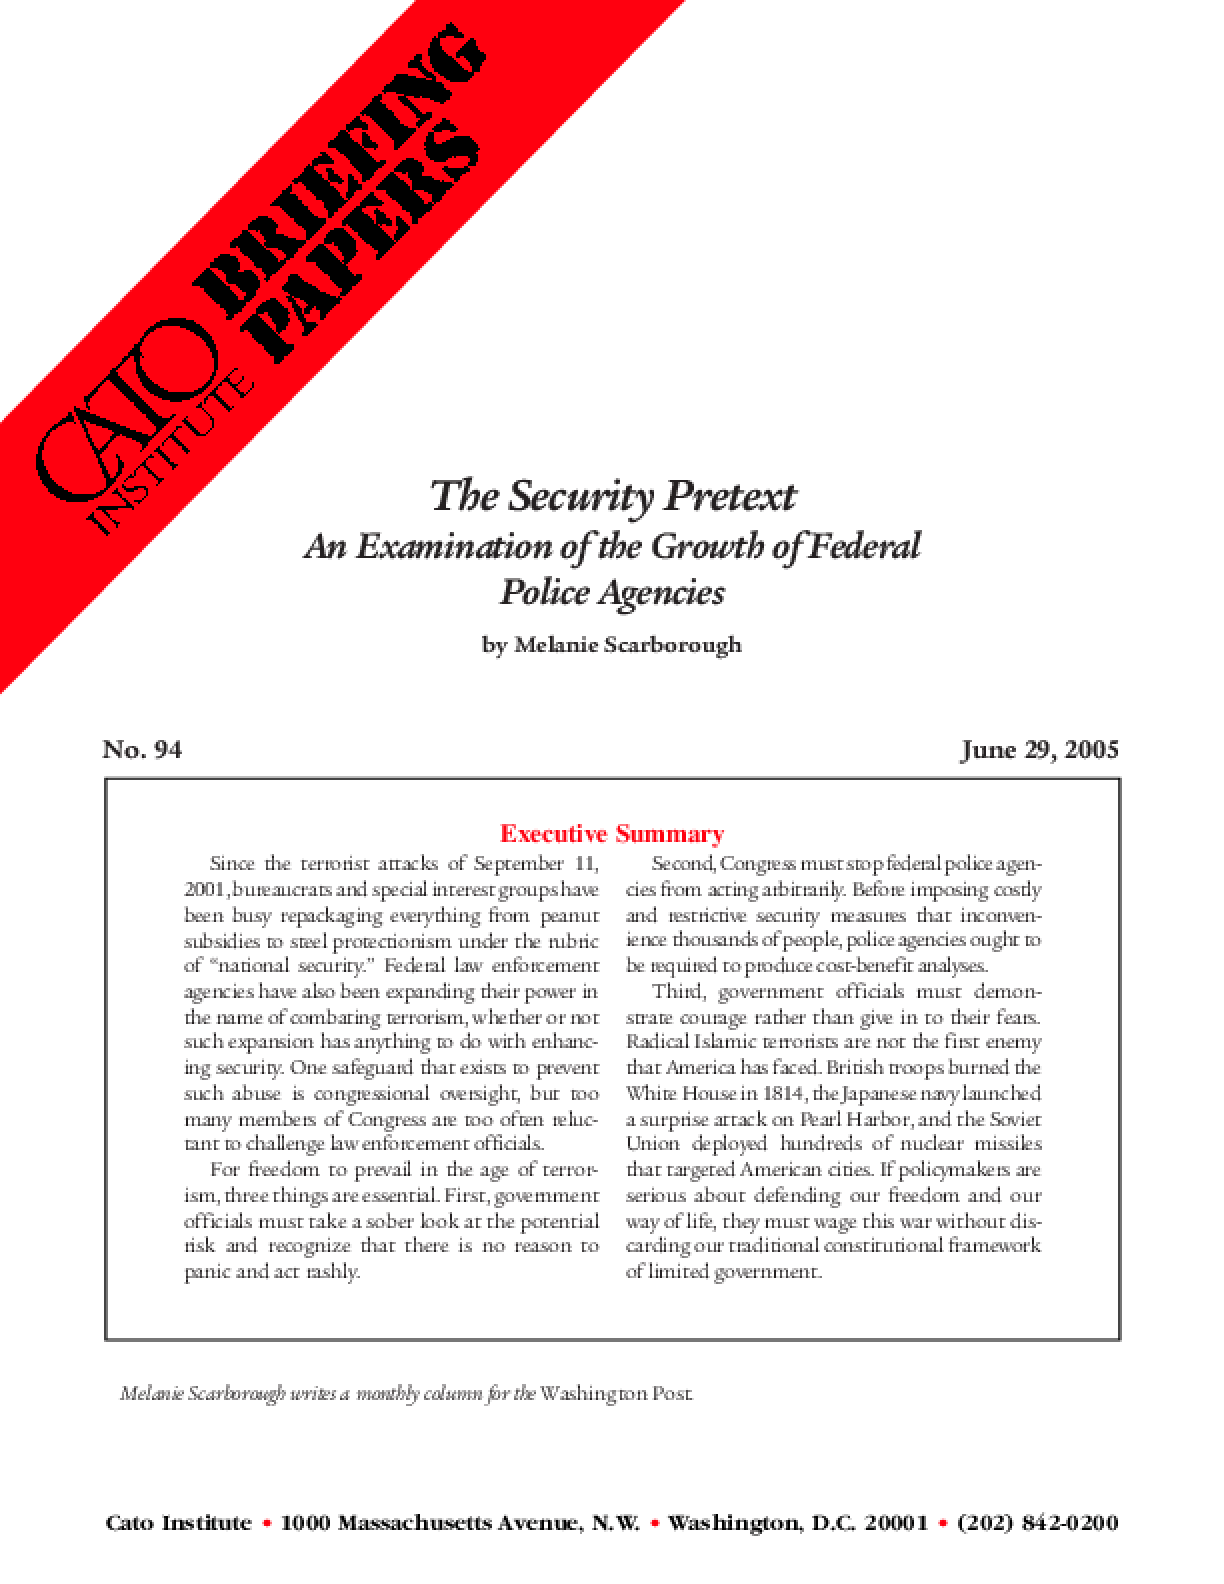 The Security Pretext: An Examination of the Growth of Federal Police Agencies